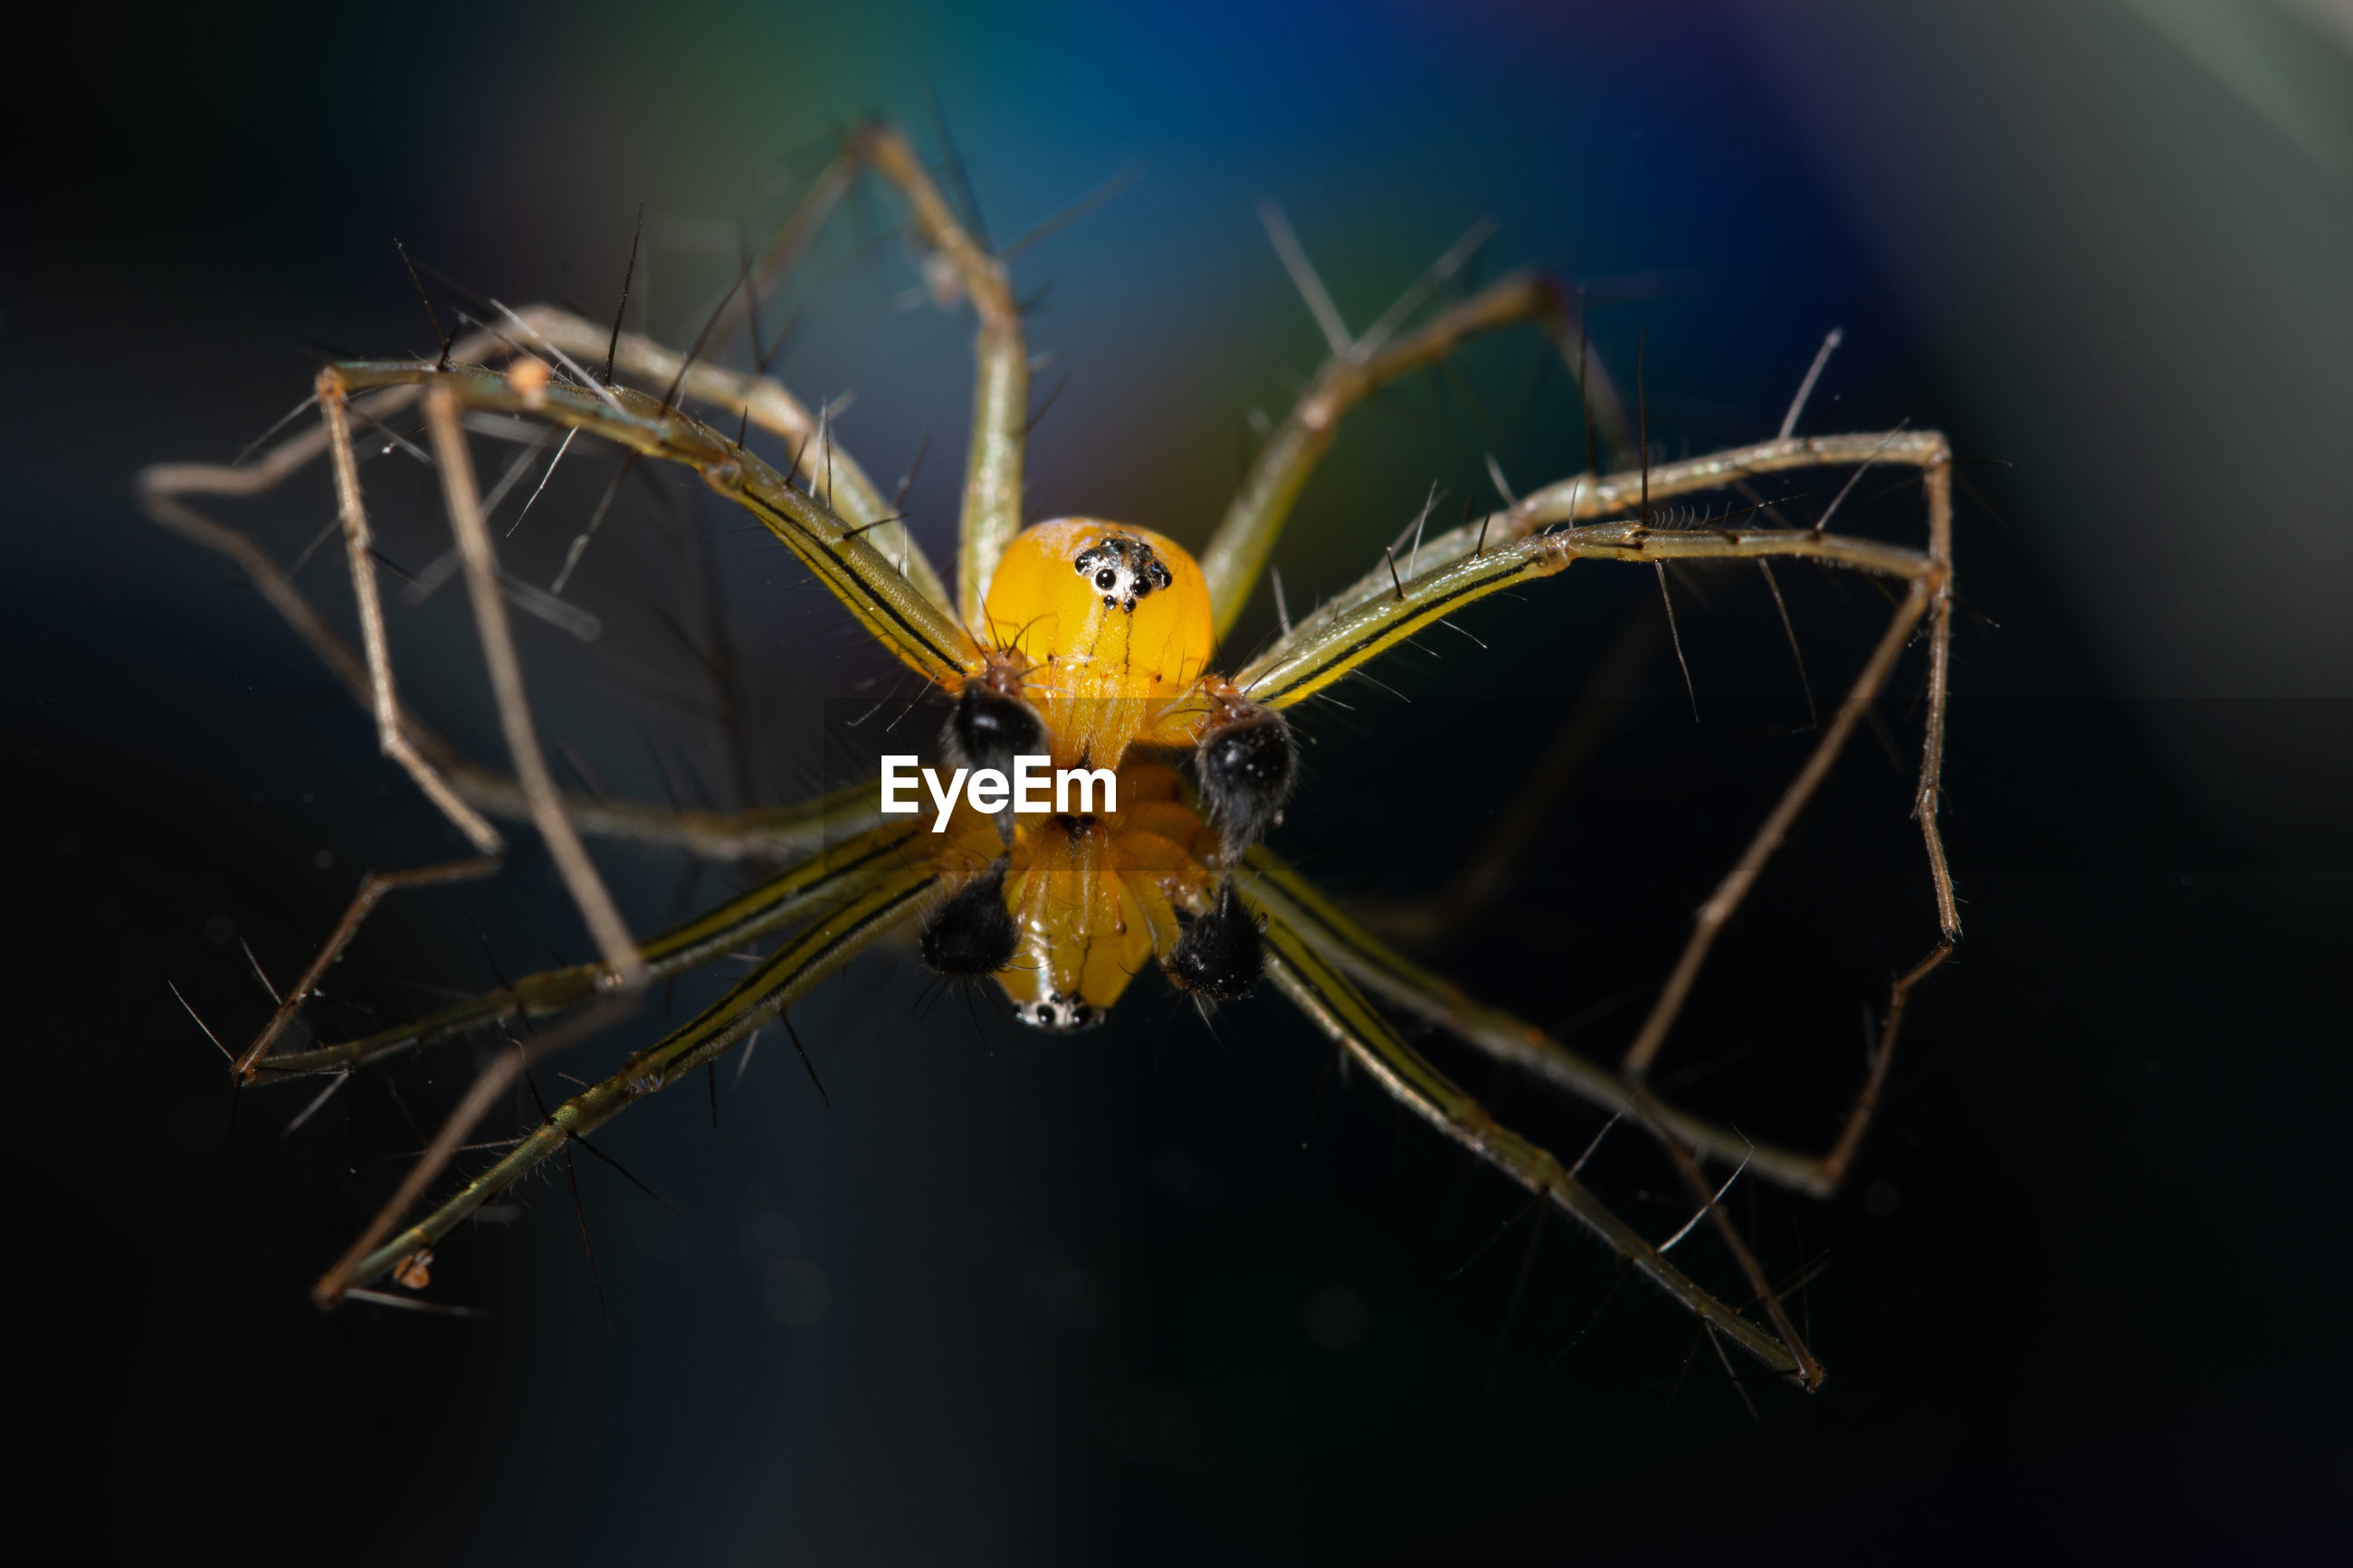 Close-up of spider on surface with reflection